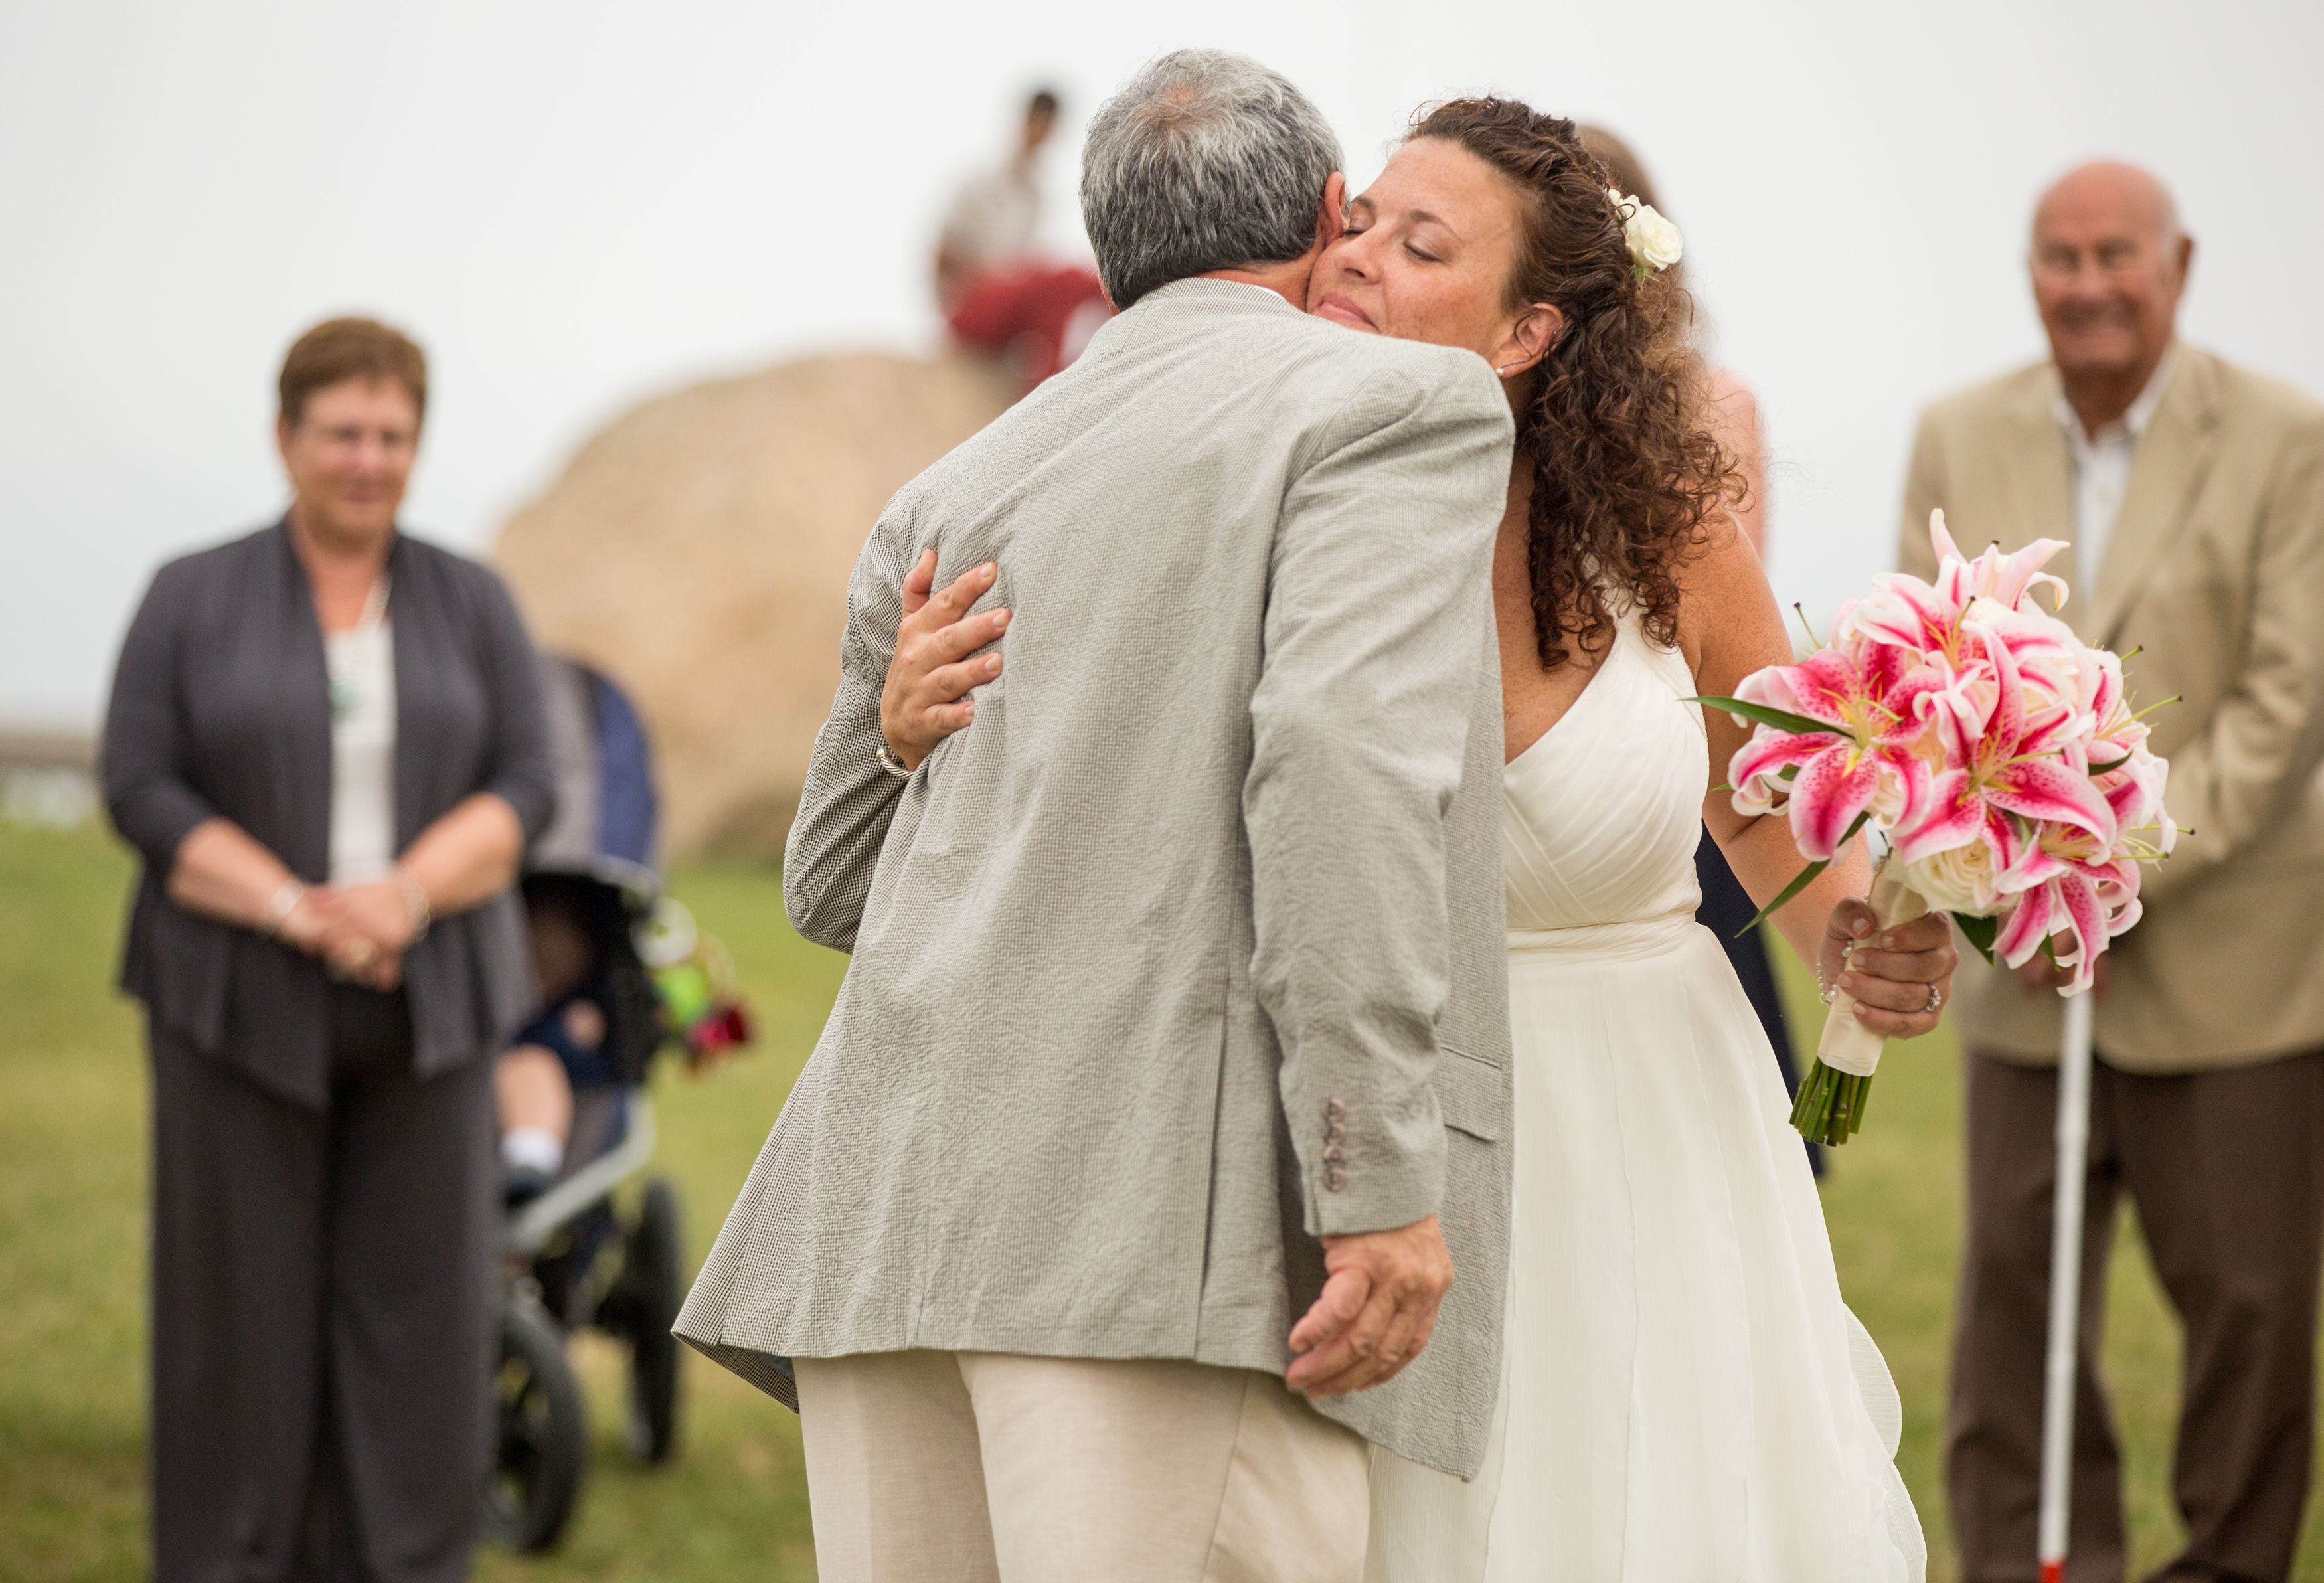 allegra_anderson_photography_block_island_rhode_island_wedding_photographer_spring_house_odell_2016164